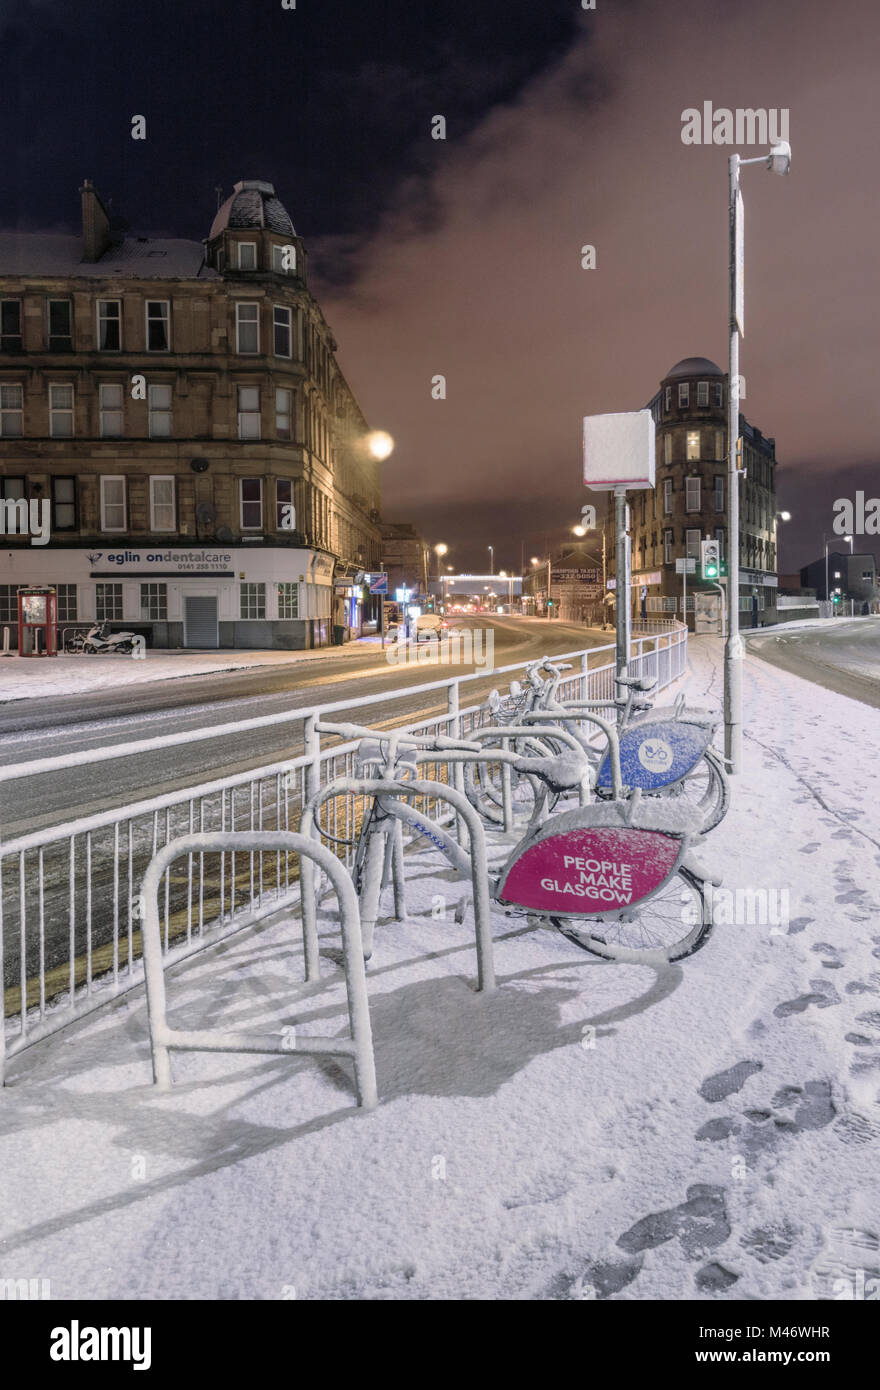 Public bicycle hire station in Glasgow city at night after a fall of snow, Scotland, UK - Stock Image